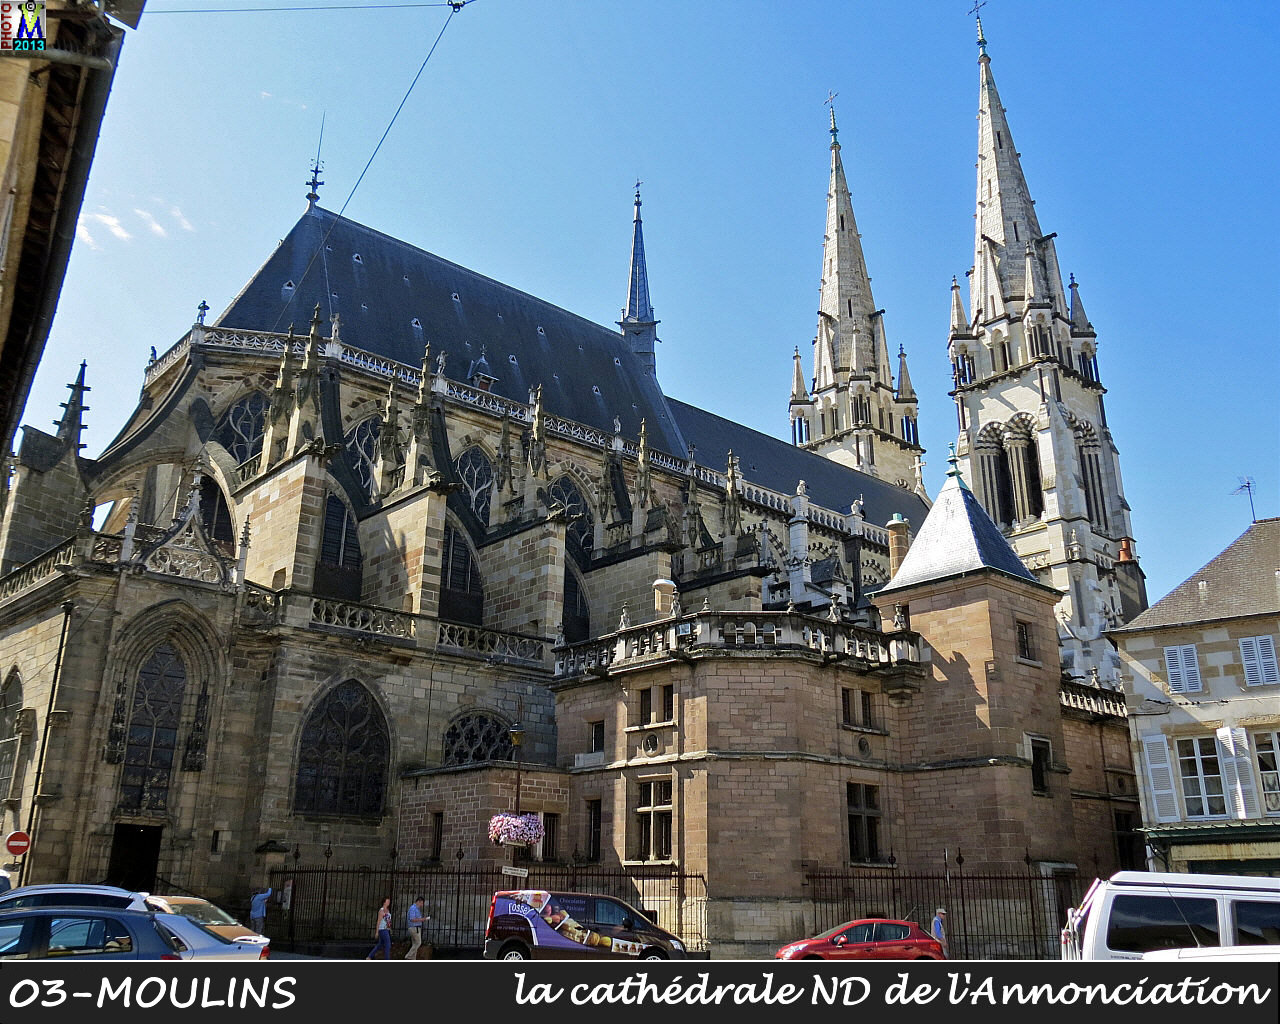 03MOULINS_cathedrale_104.jpg